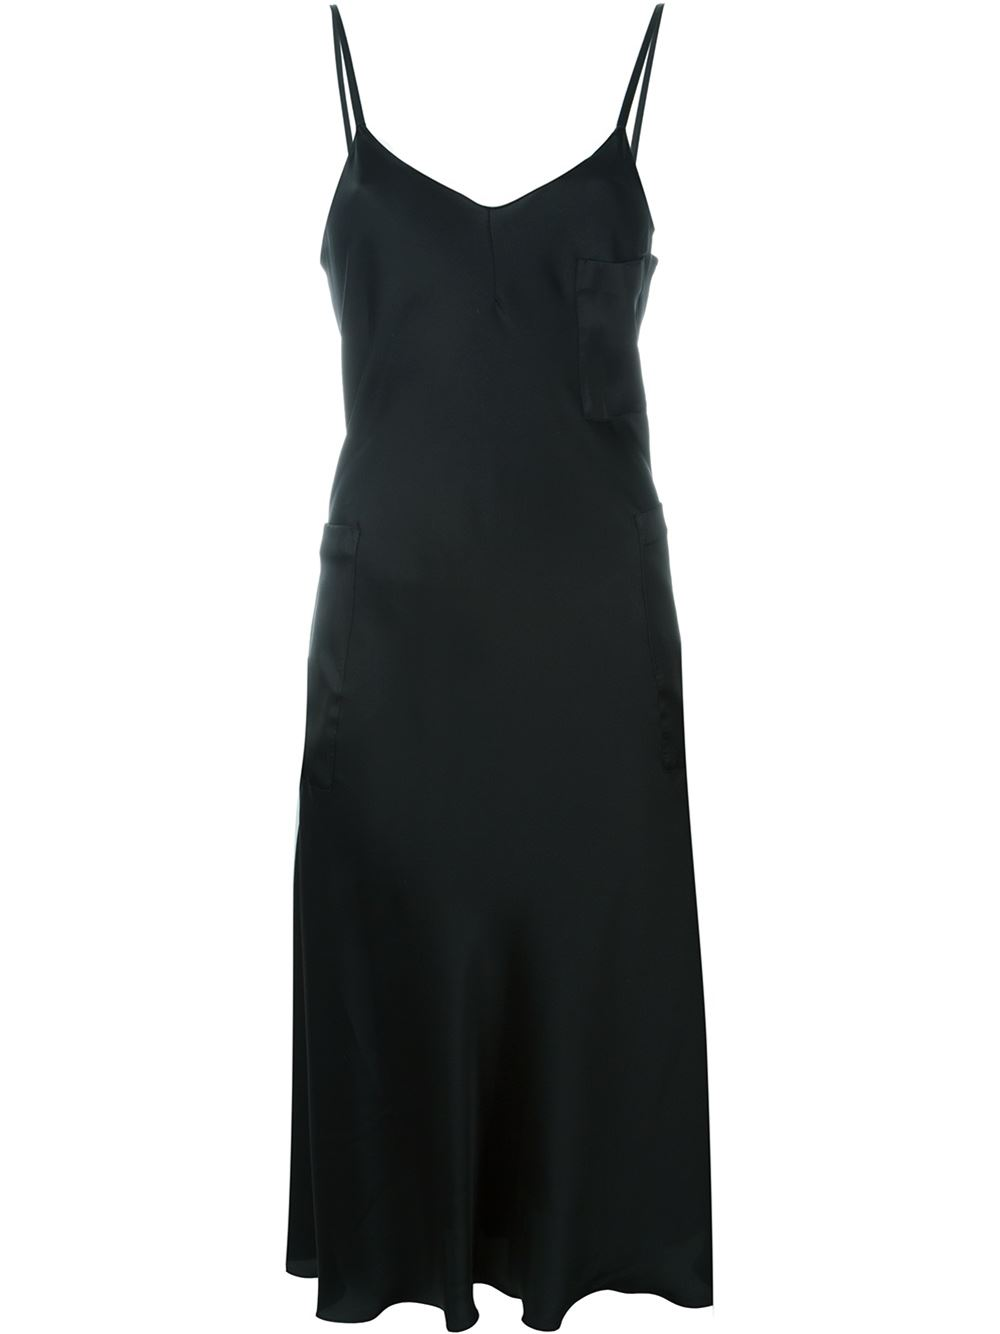 Mm6 Maison Margiela Slip Dress